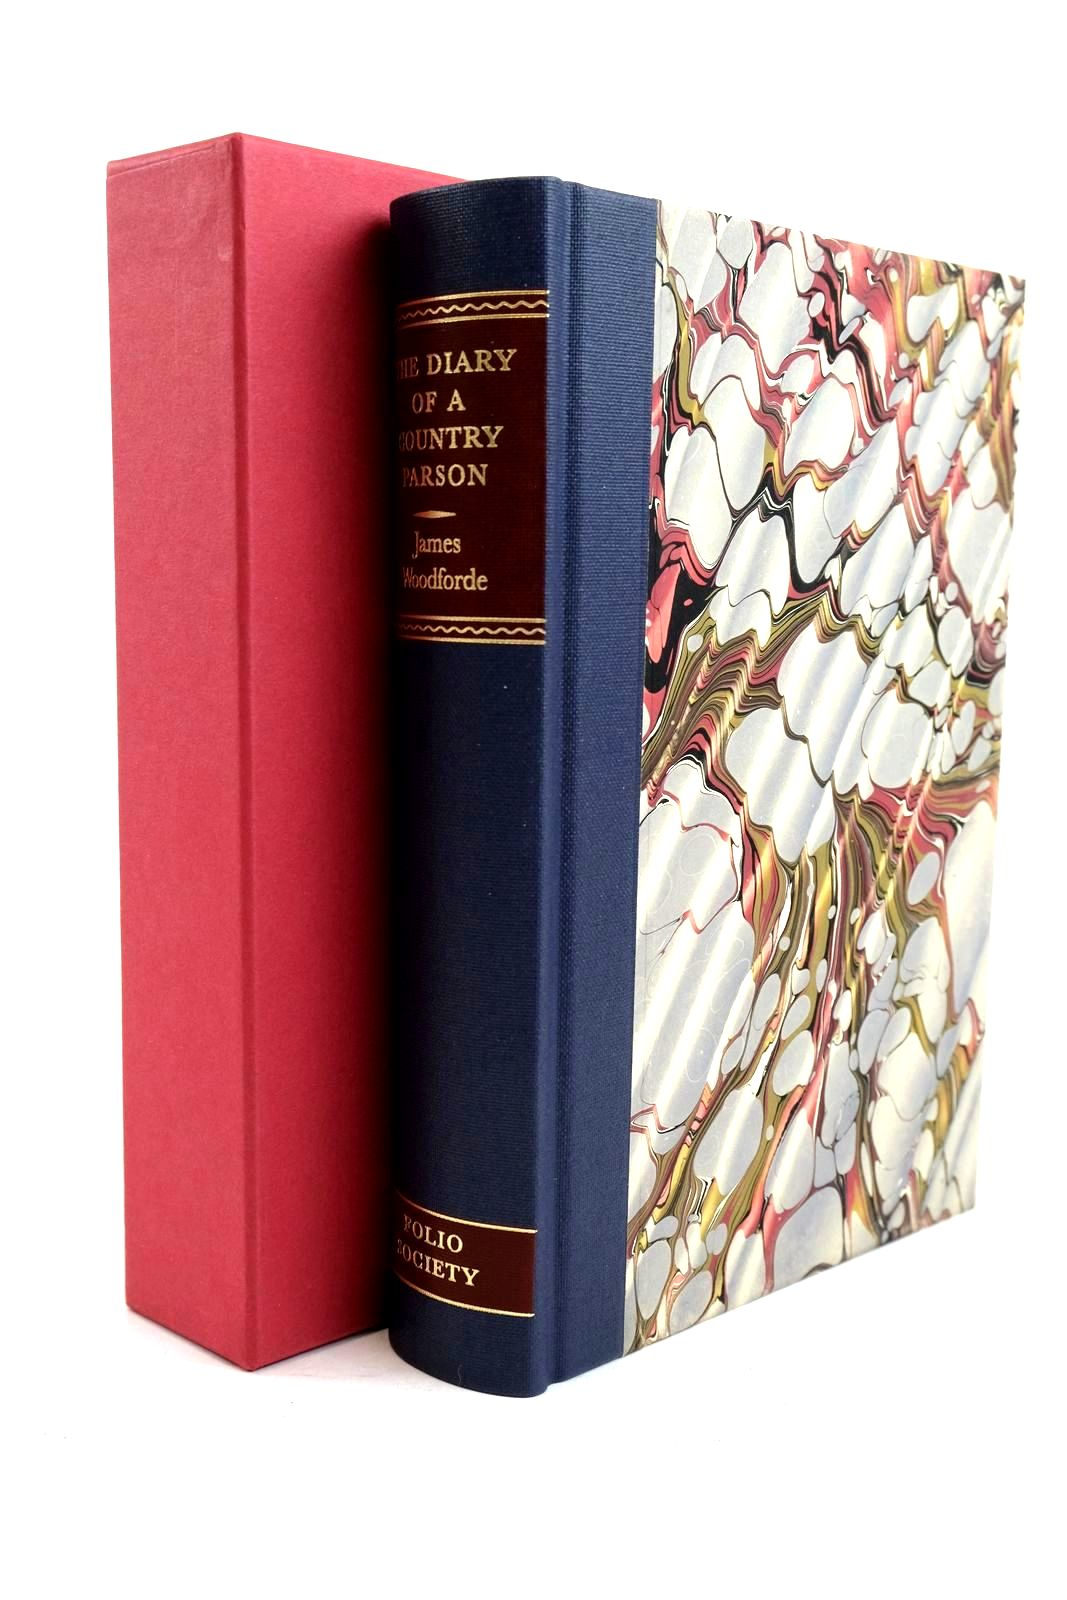 Photo of THE DIARY OF A COUNTRY PARSON written by Woodforde, James Hughes, David illustrated by Stephens, Ian published by Folio Society (STOCK CODE: 1320663)  for sale by Stella & Rose's Books